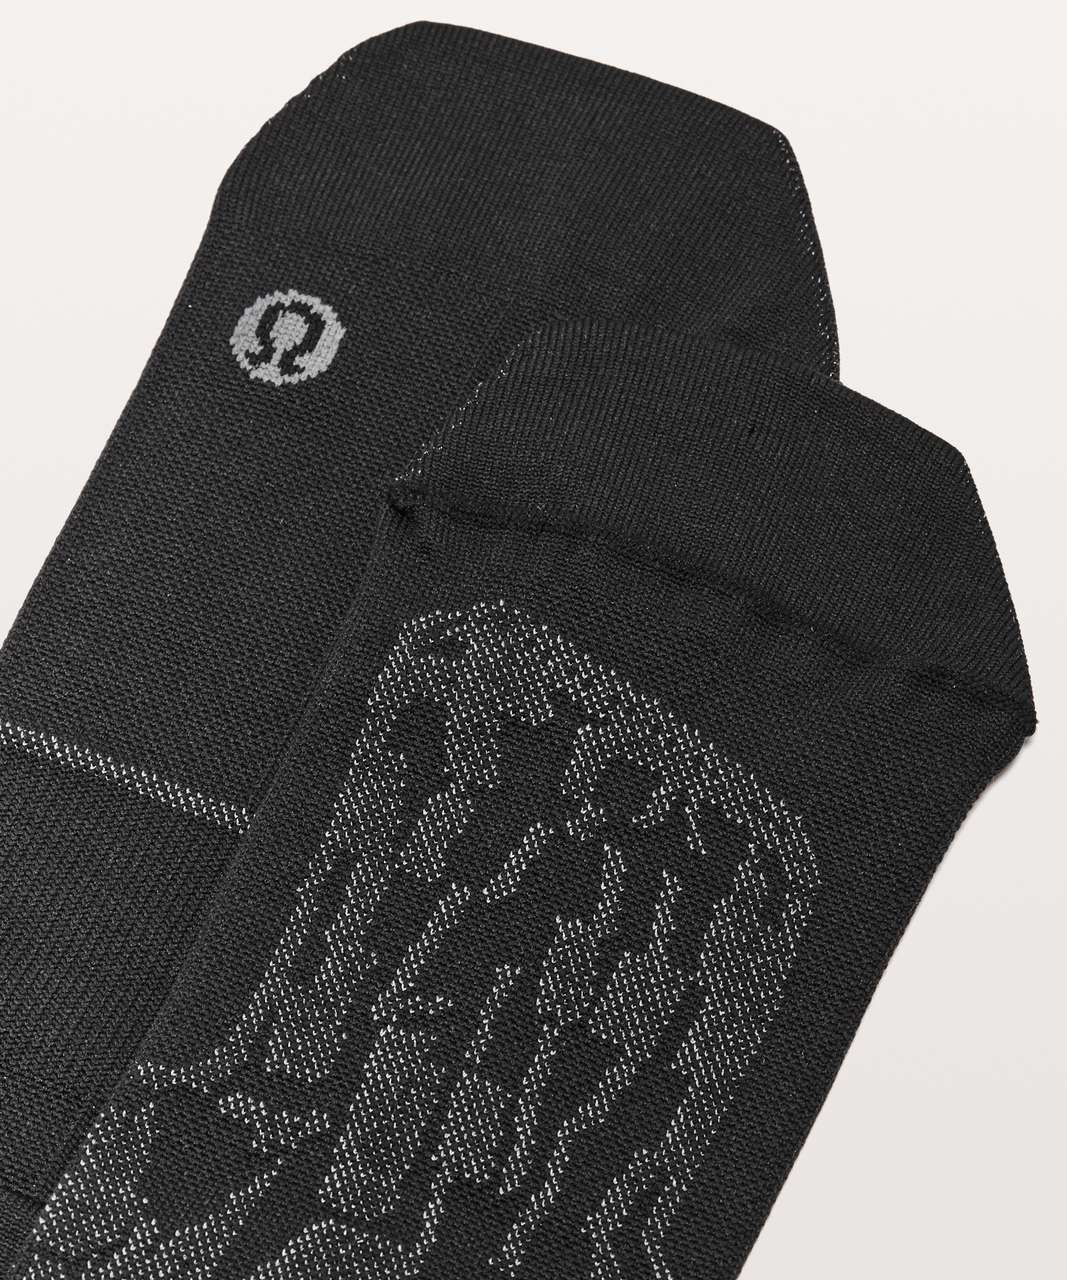 Lululemon Surge Sock *Silver - Black / White